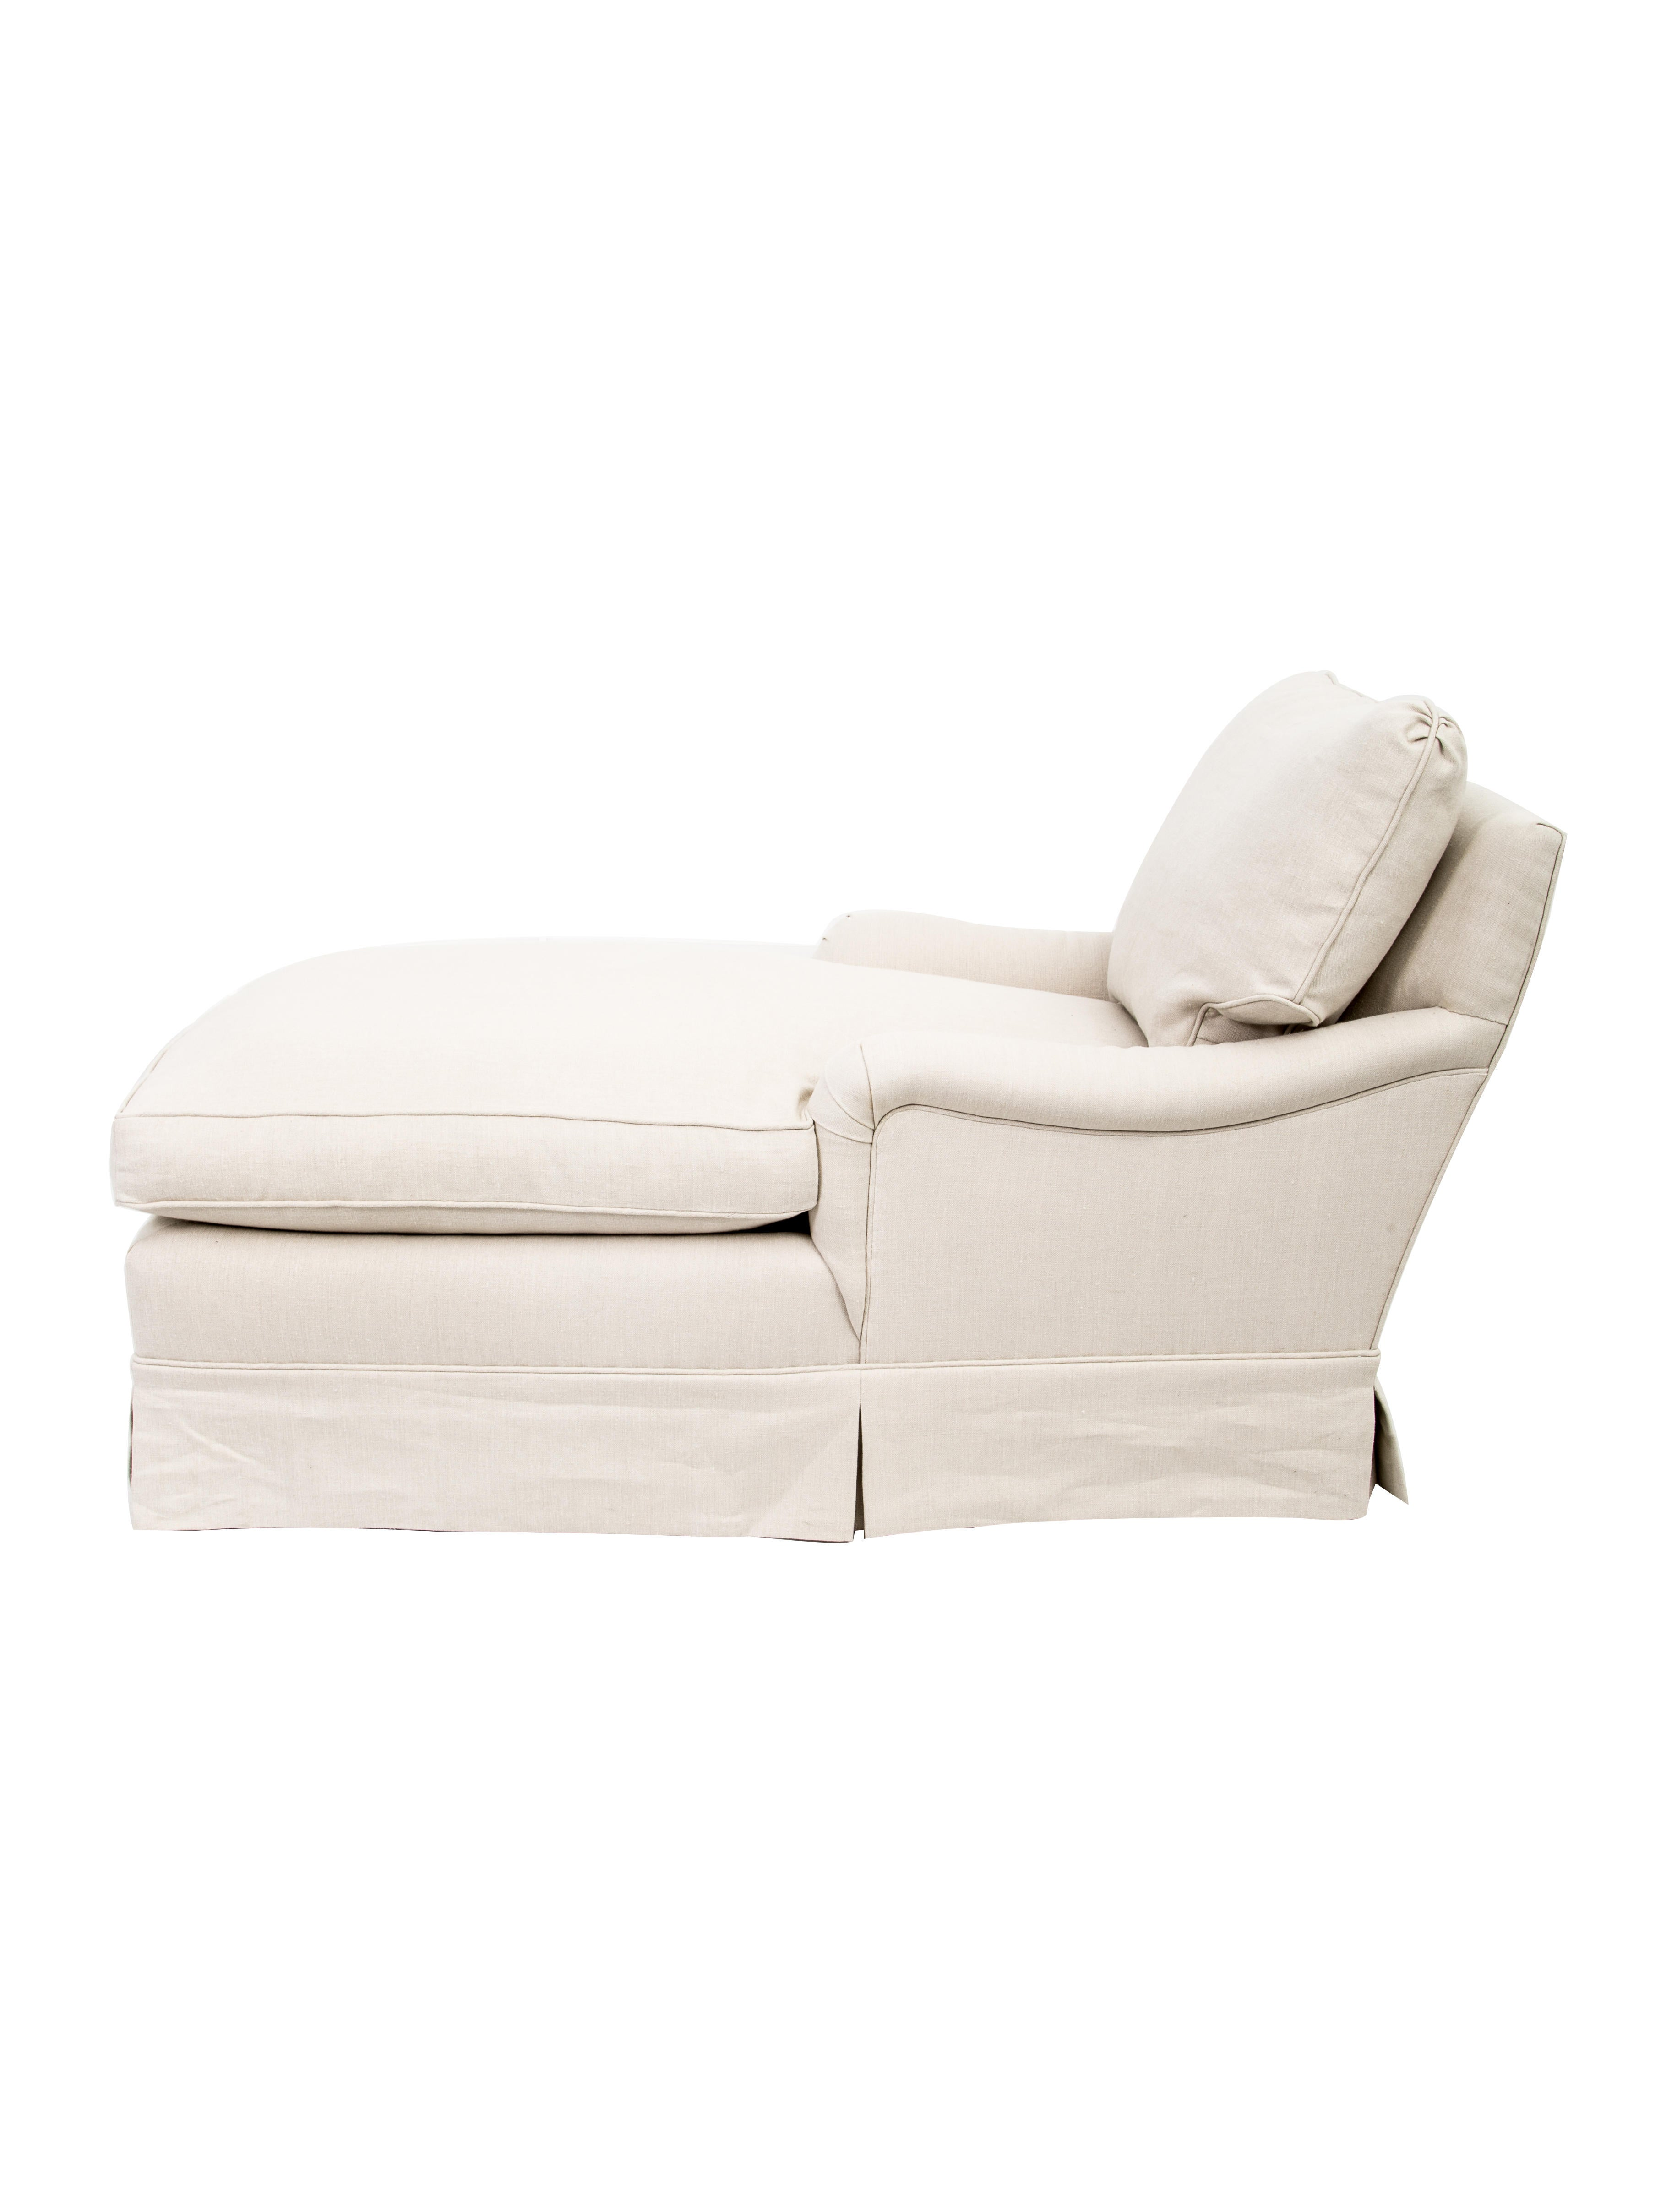 Upholstered chaise lounge furniture furni20091 the for Chaise lounge com